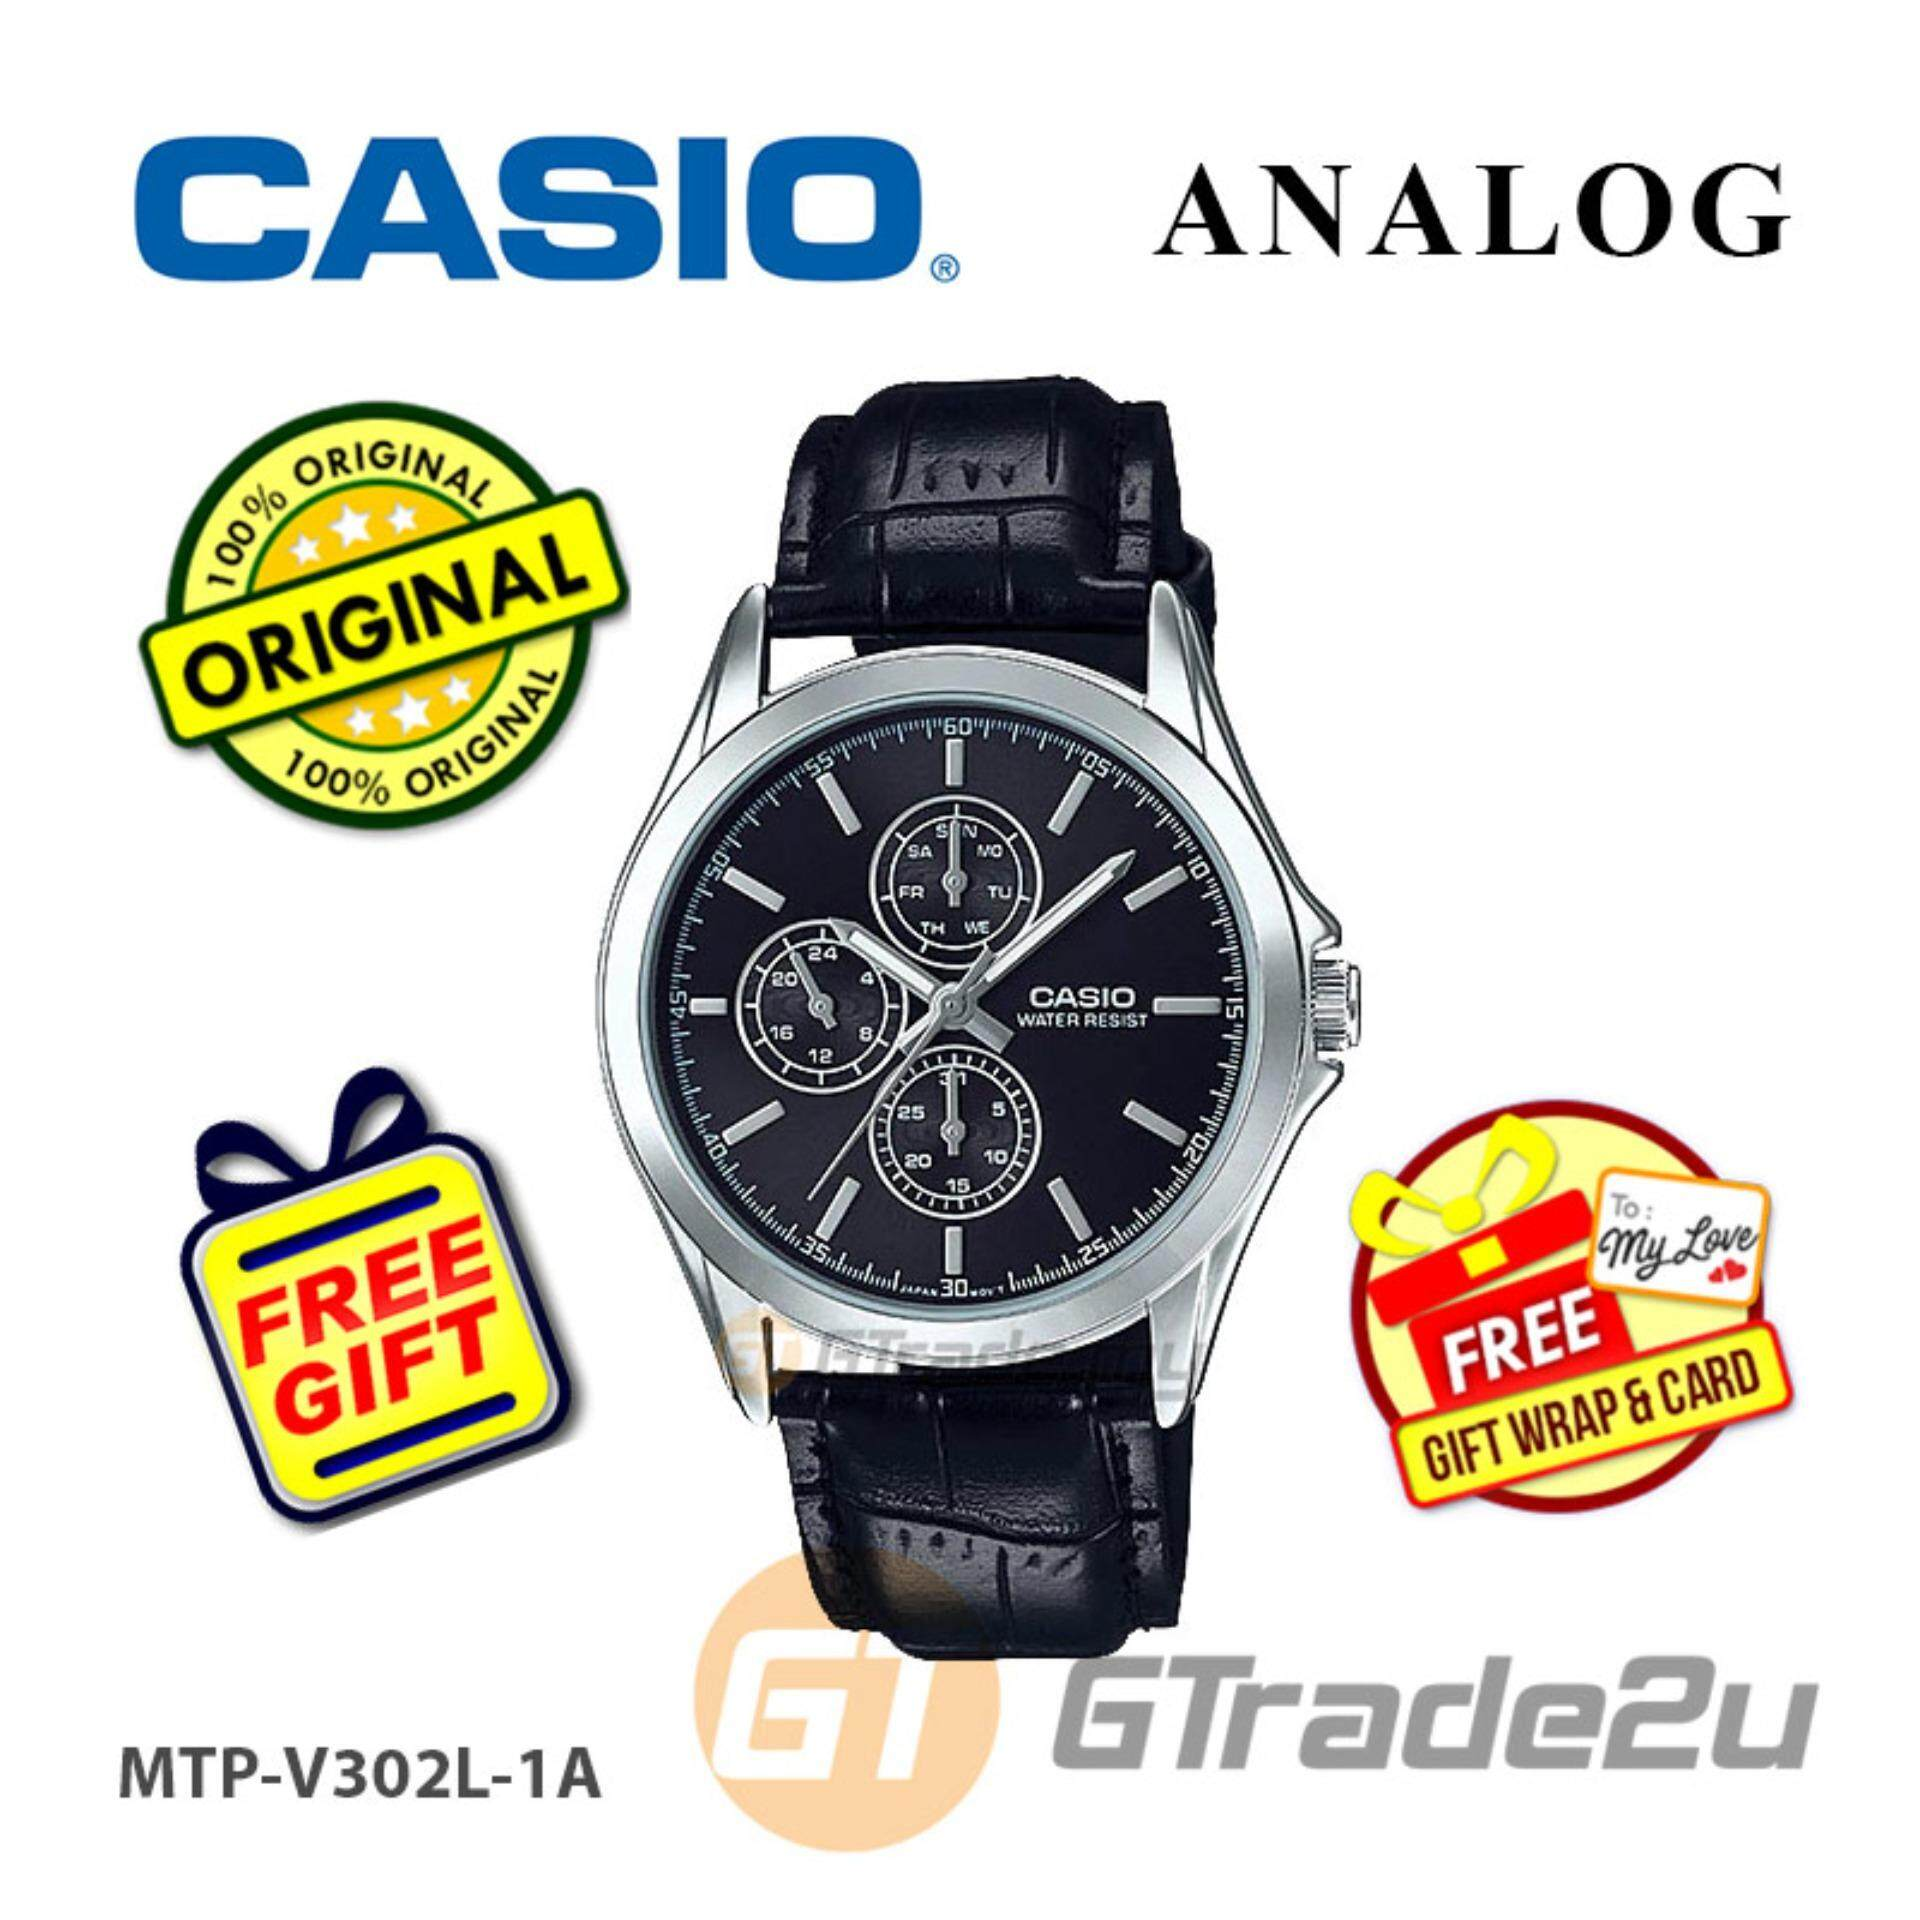 CASIO Men MTP-V302L-1A Multi-Hand Analog Watch  Date, day and 24-hour Indicator Malaysia